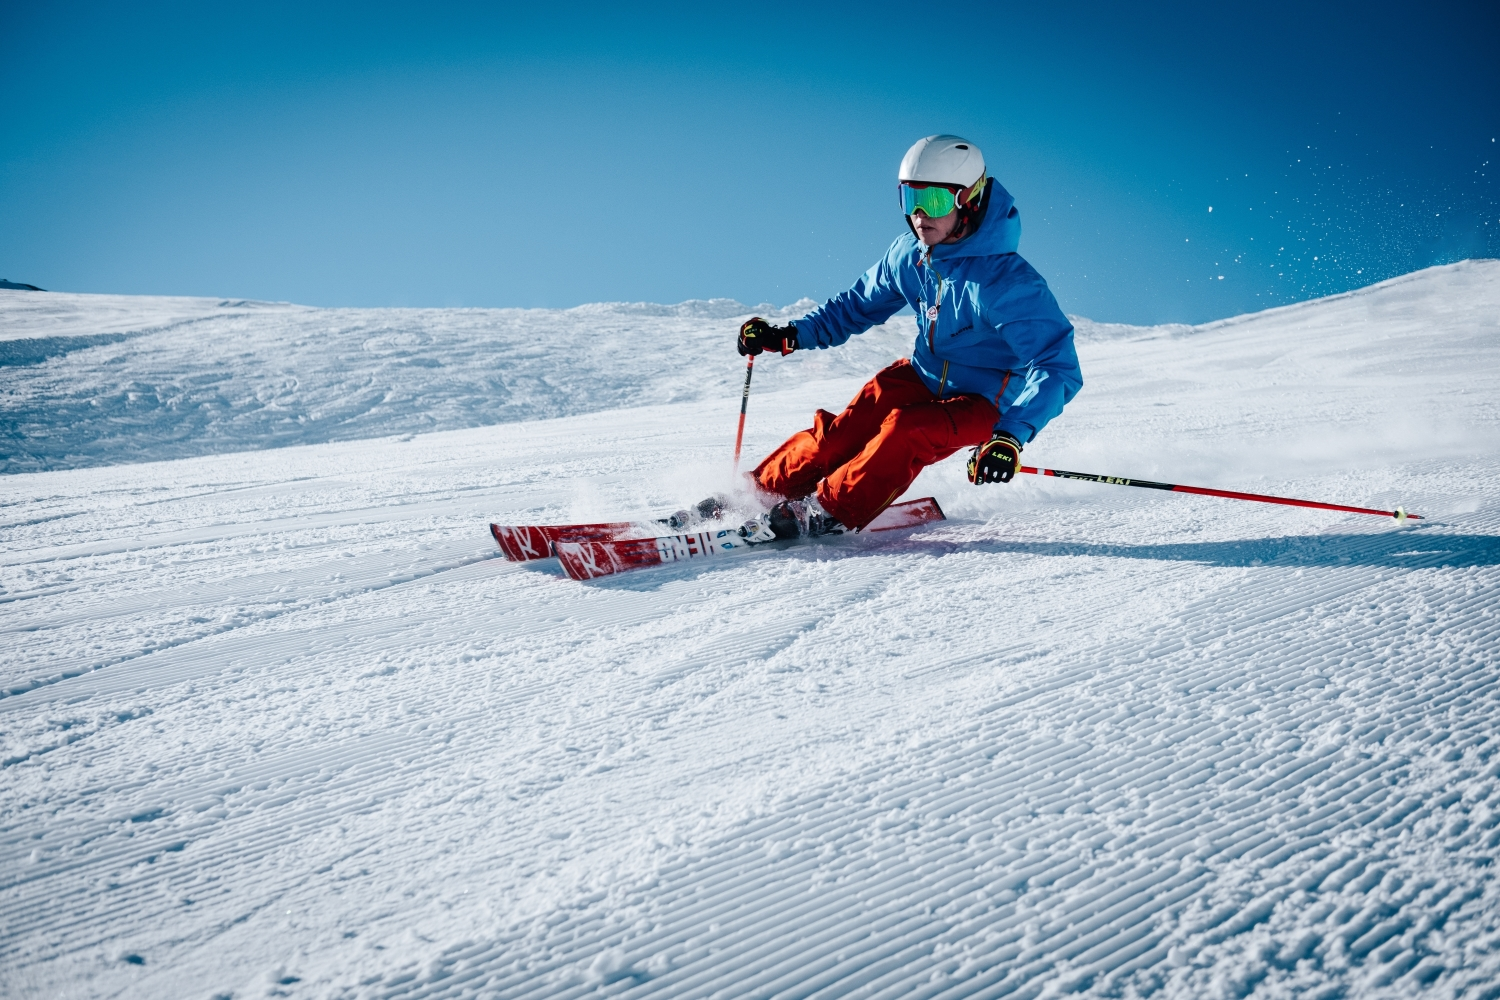 Best Value Winter Ski Deals 2020/21